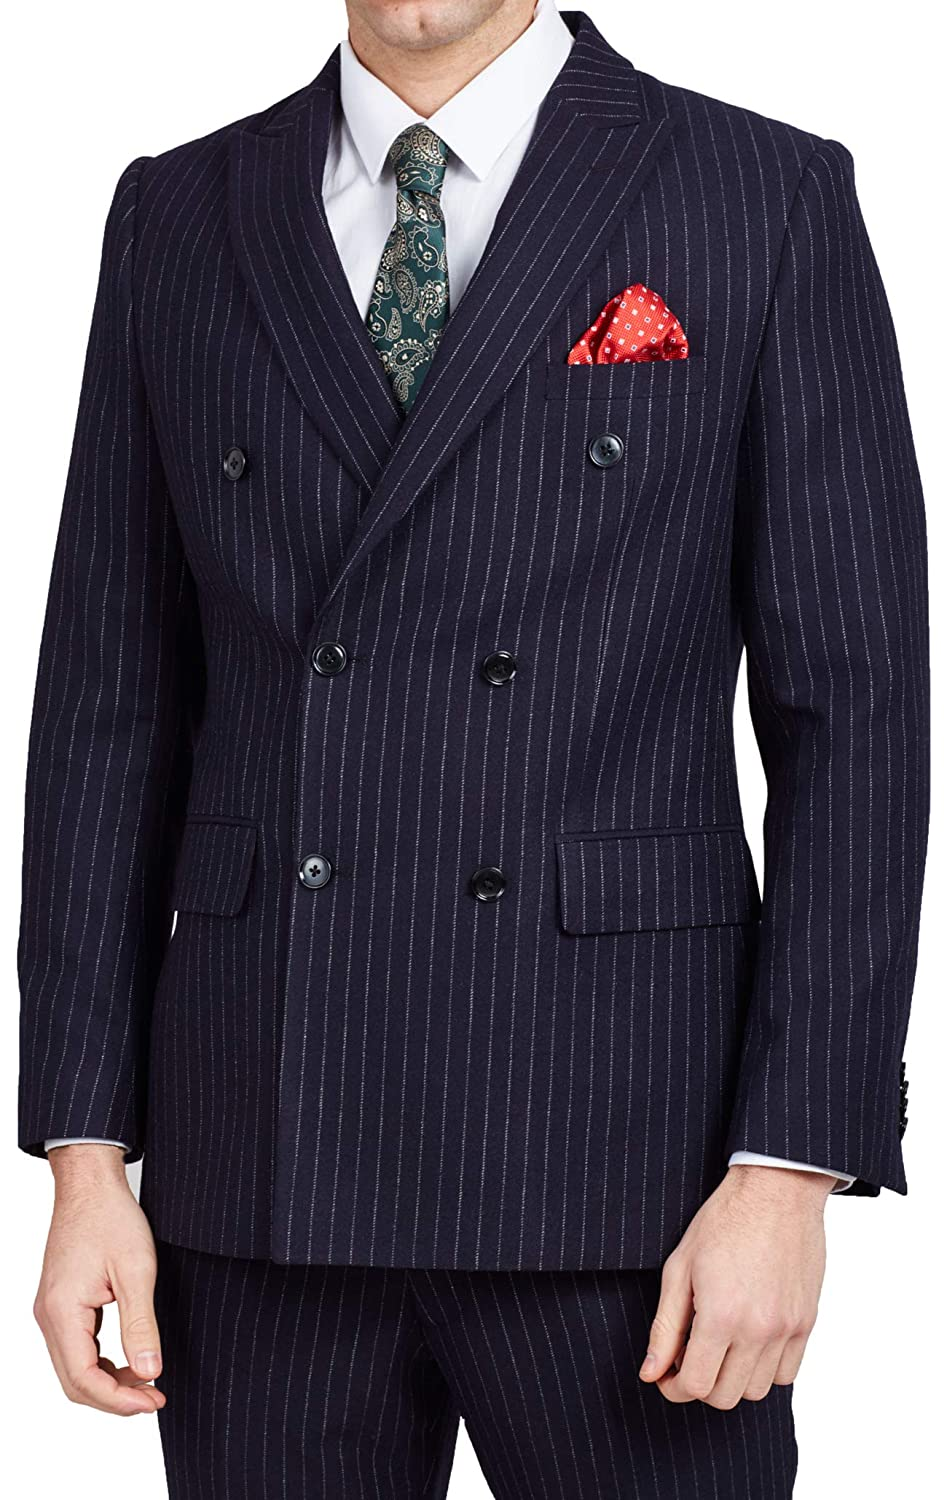 1940s Zoot Suit History & Buy Modern Zoot Suits Dobell Mens Navy Suit Jacket Tailored Fit Notch Lapel Double Breasted Chalk Stripe £99.99 AT vintagedancer.com